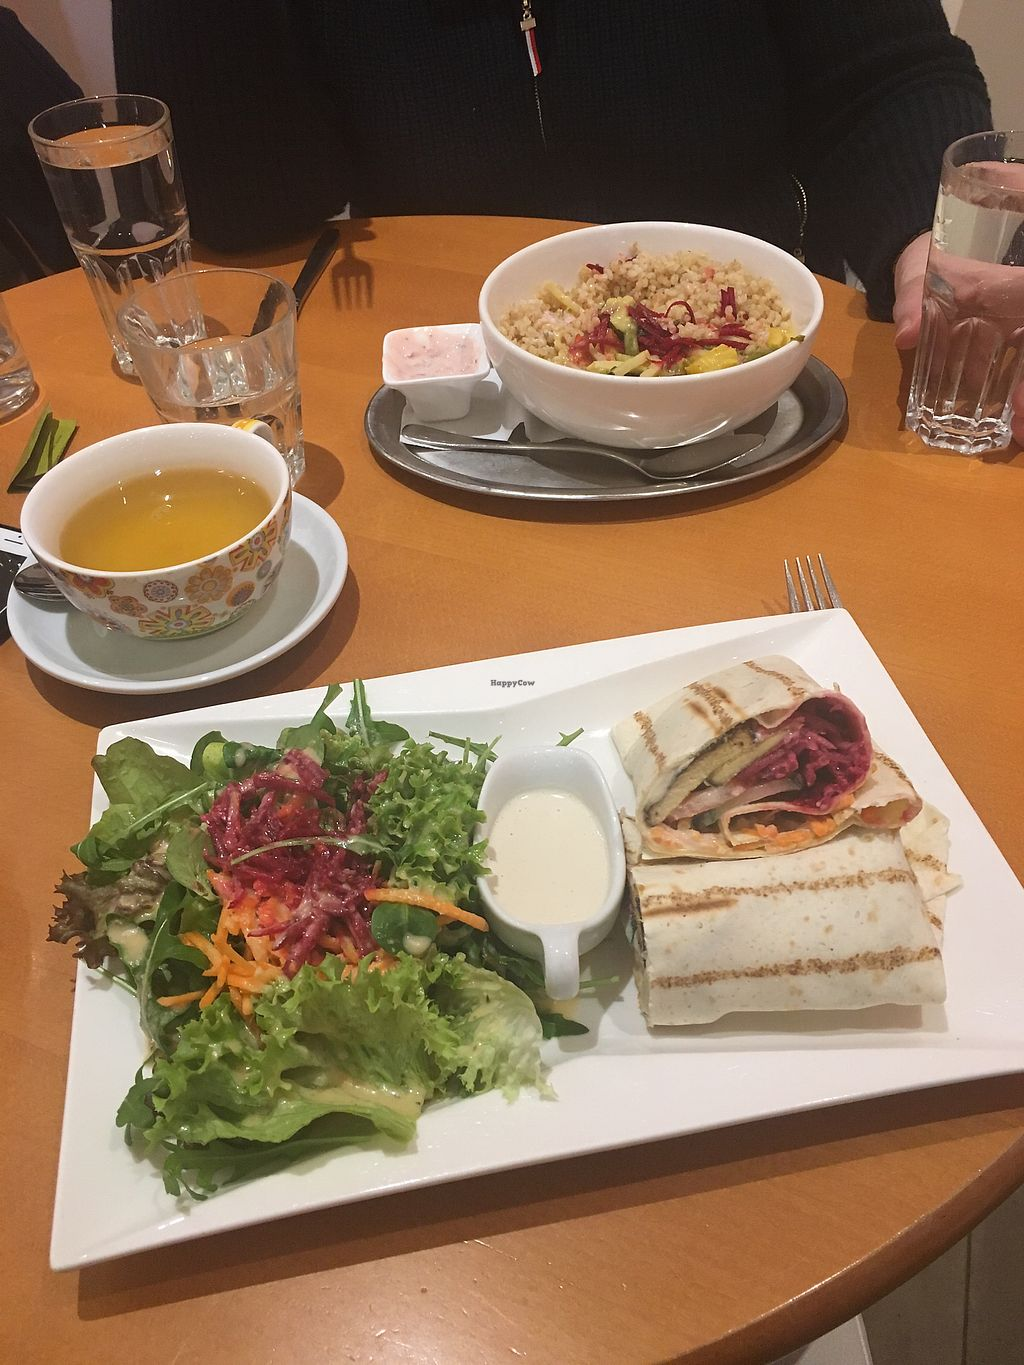 """Photo of The Heart of Joy Cafe  by <a href=""""/members/profile/RachelJenkins"""">RachelJenkins</a> <br/>Tofu tahini wrap (customised dish) and curry of the day- both vegan  <br/> January 28, 2018  - <a href='/contact/abuse/image/17506/351675'>Report</a>"""